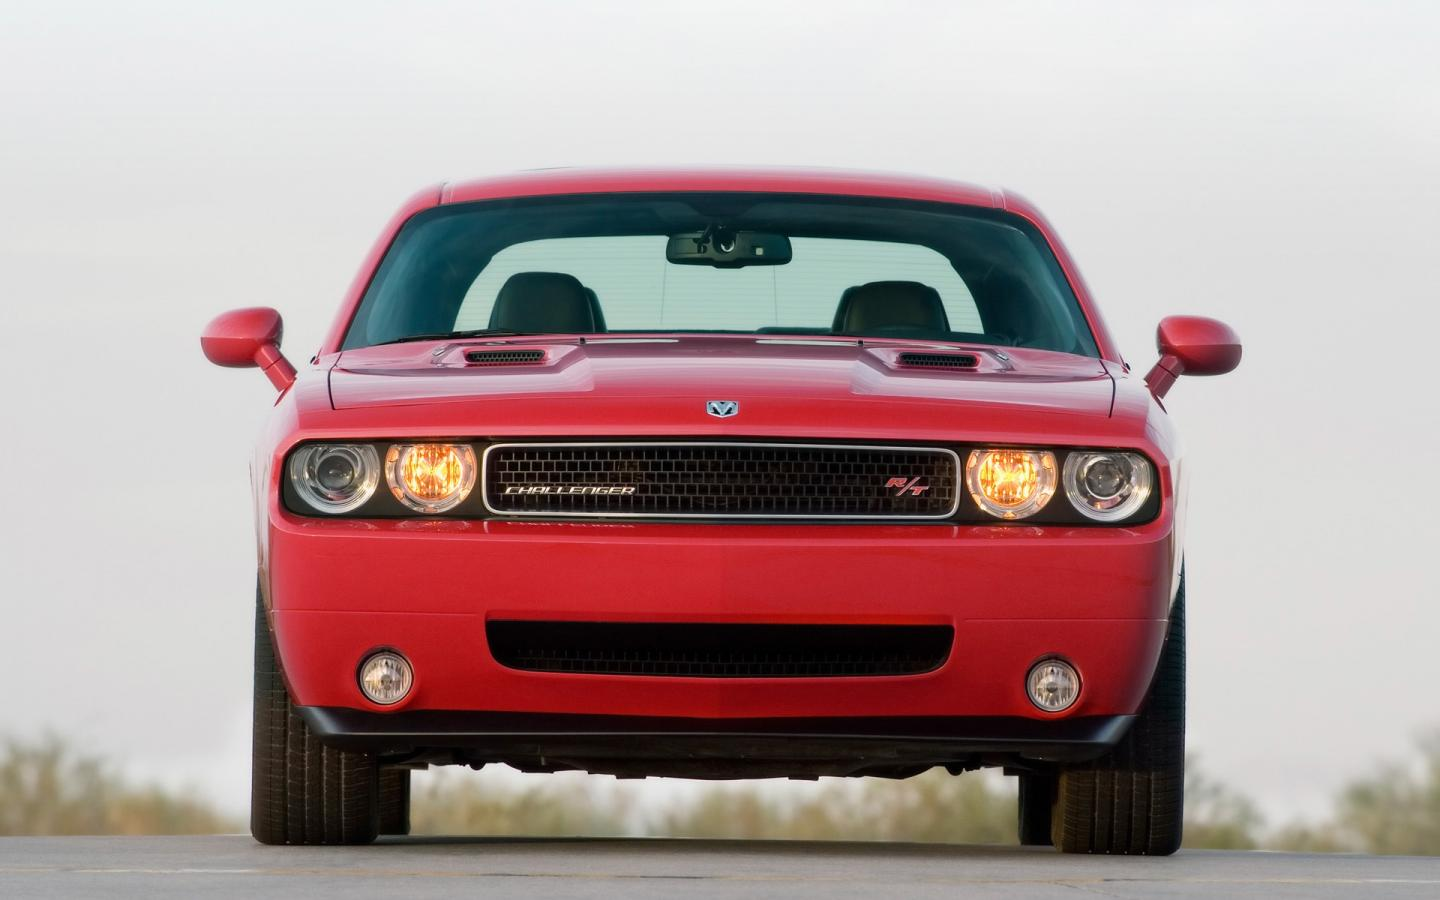 2009 Dodge Challenger Rt Front 1440x900